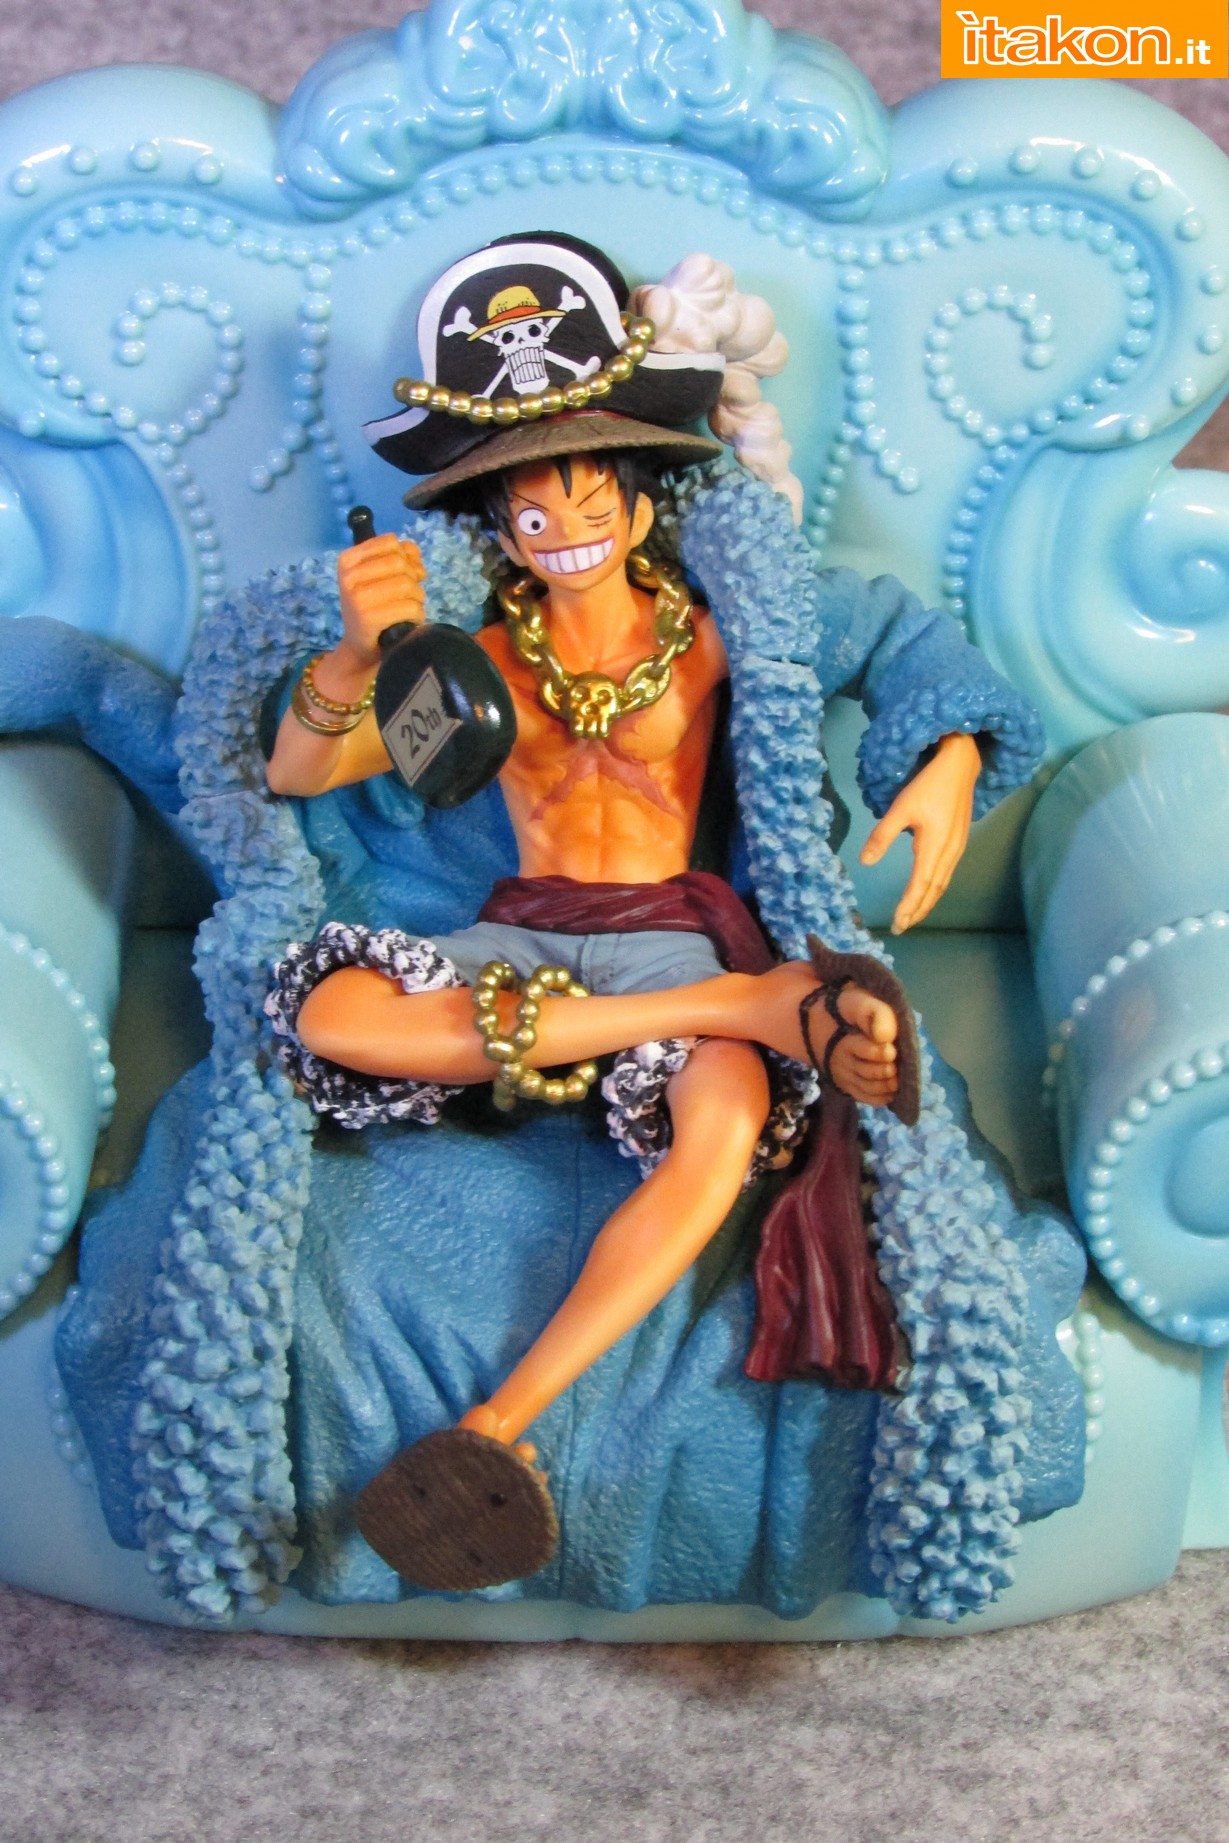 Link a Recensione Review Monkey D. Luffy One Piece 20th Anniversary ver. Figuarts ZERO di Bandai 11